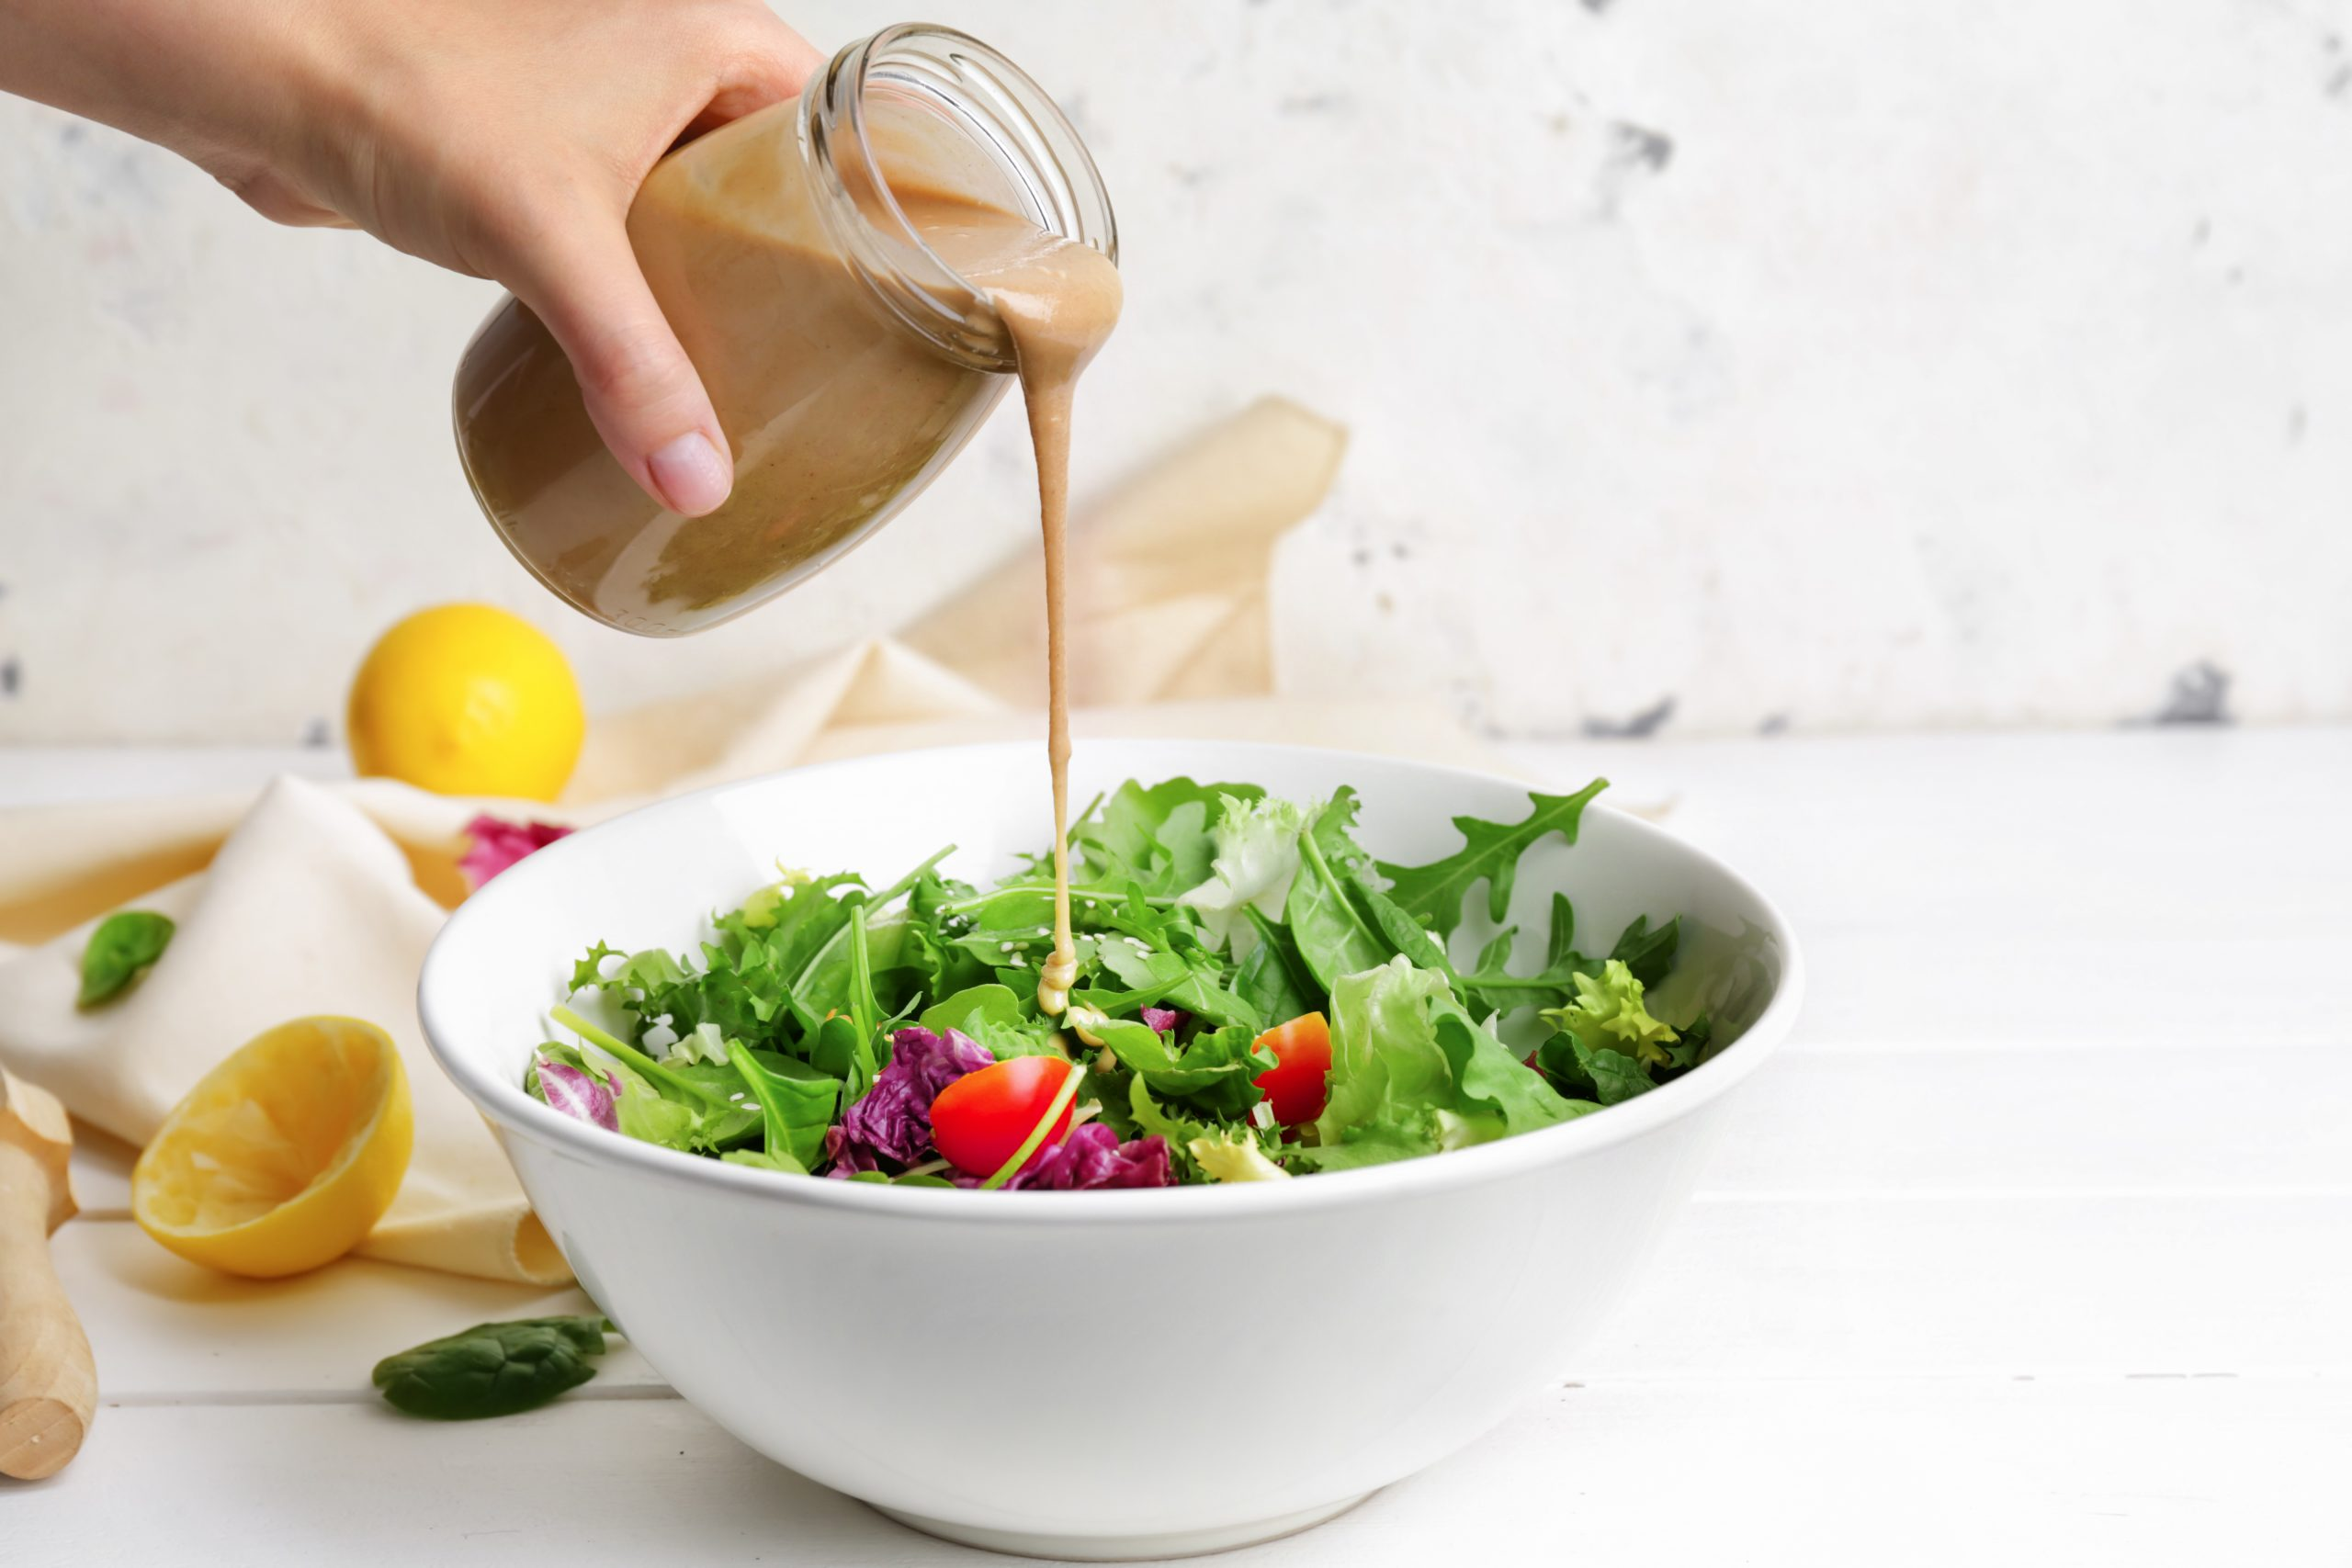 Woman pouring tasty tahini from jar onto vegetable salad in bowl